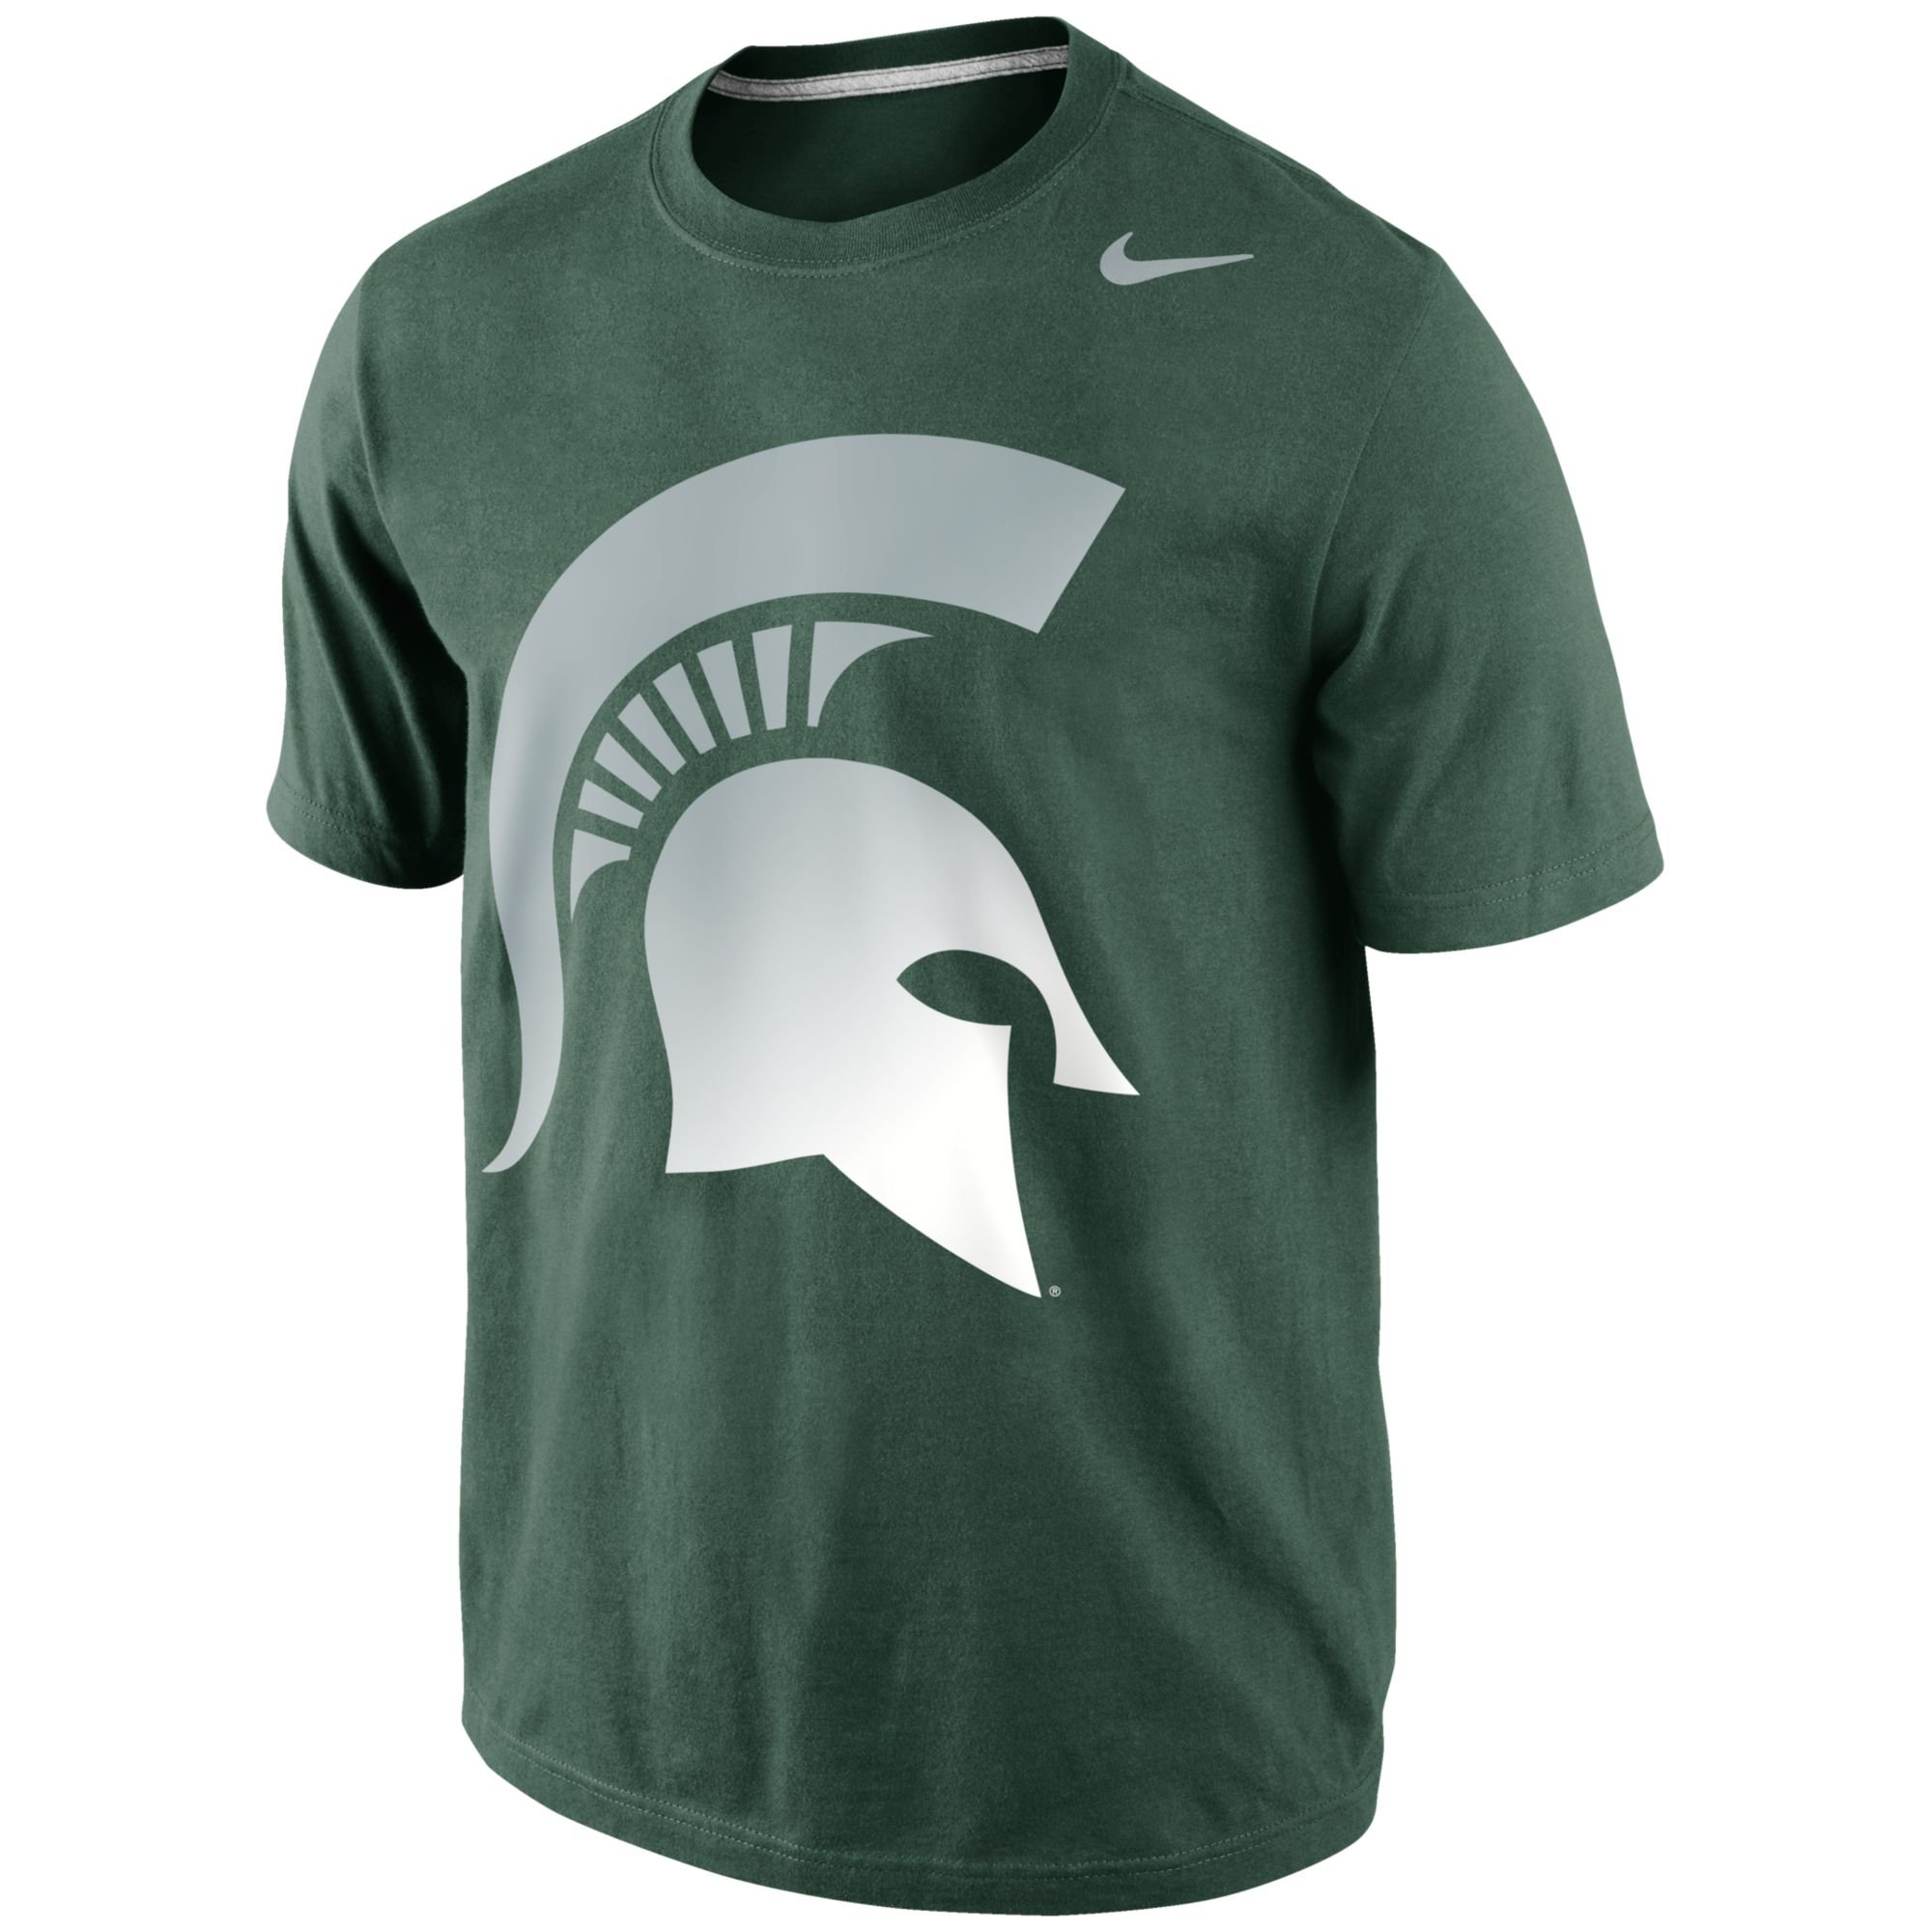 Nike Mens Michigan State Spartans Gradient Tshirt in Green ...